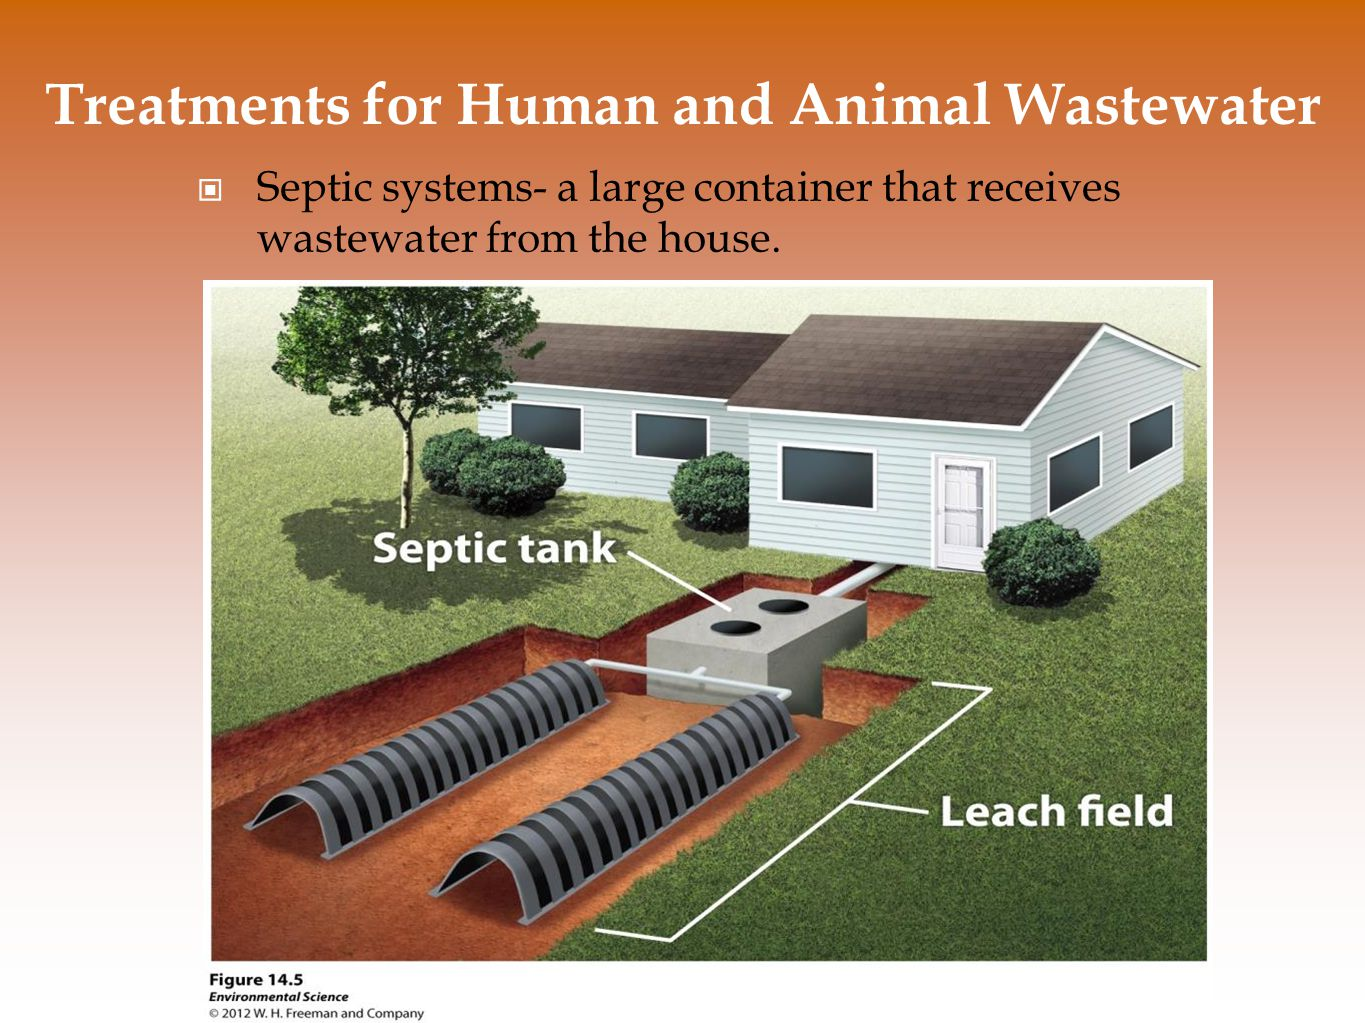 (transfer steps into personal diagrams) Treatments for Human and Animal Wastewater Sewage Treatment Plants- centralized plants in areas with large populations that receive wastewater via a network of underground pipes.